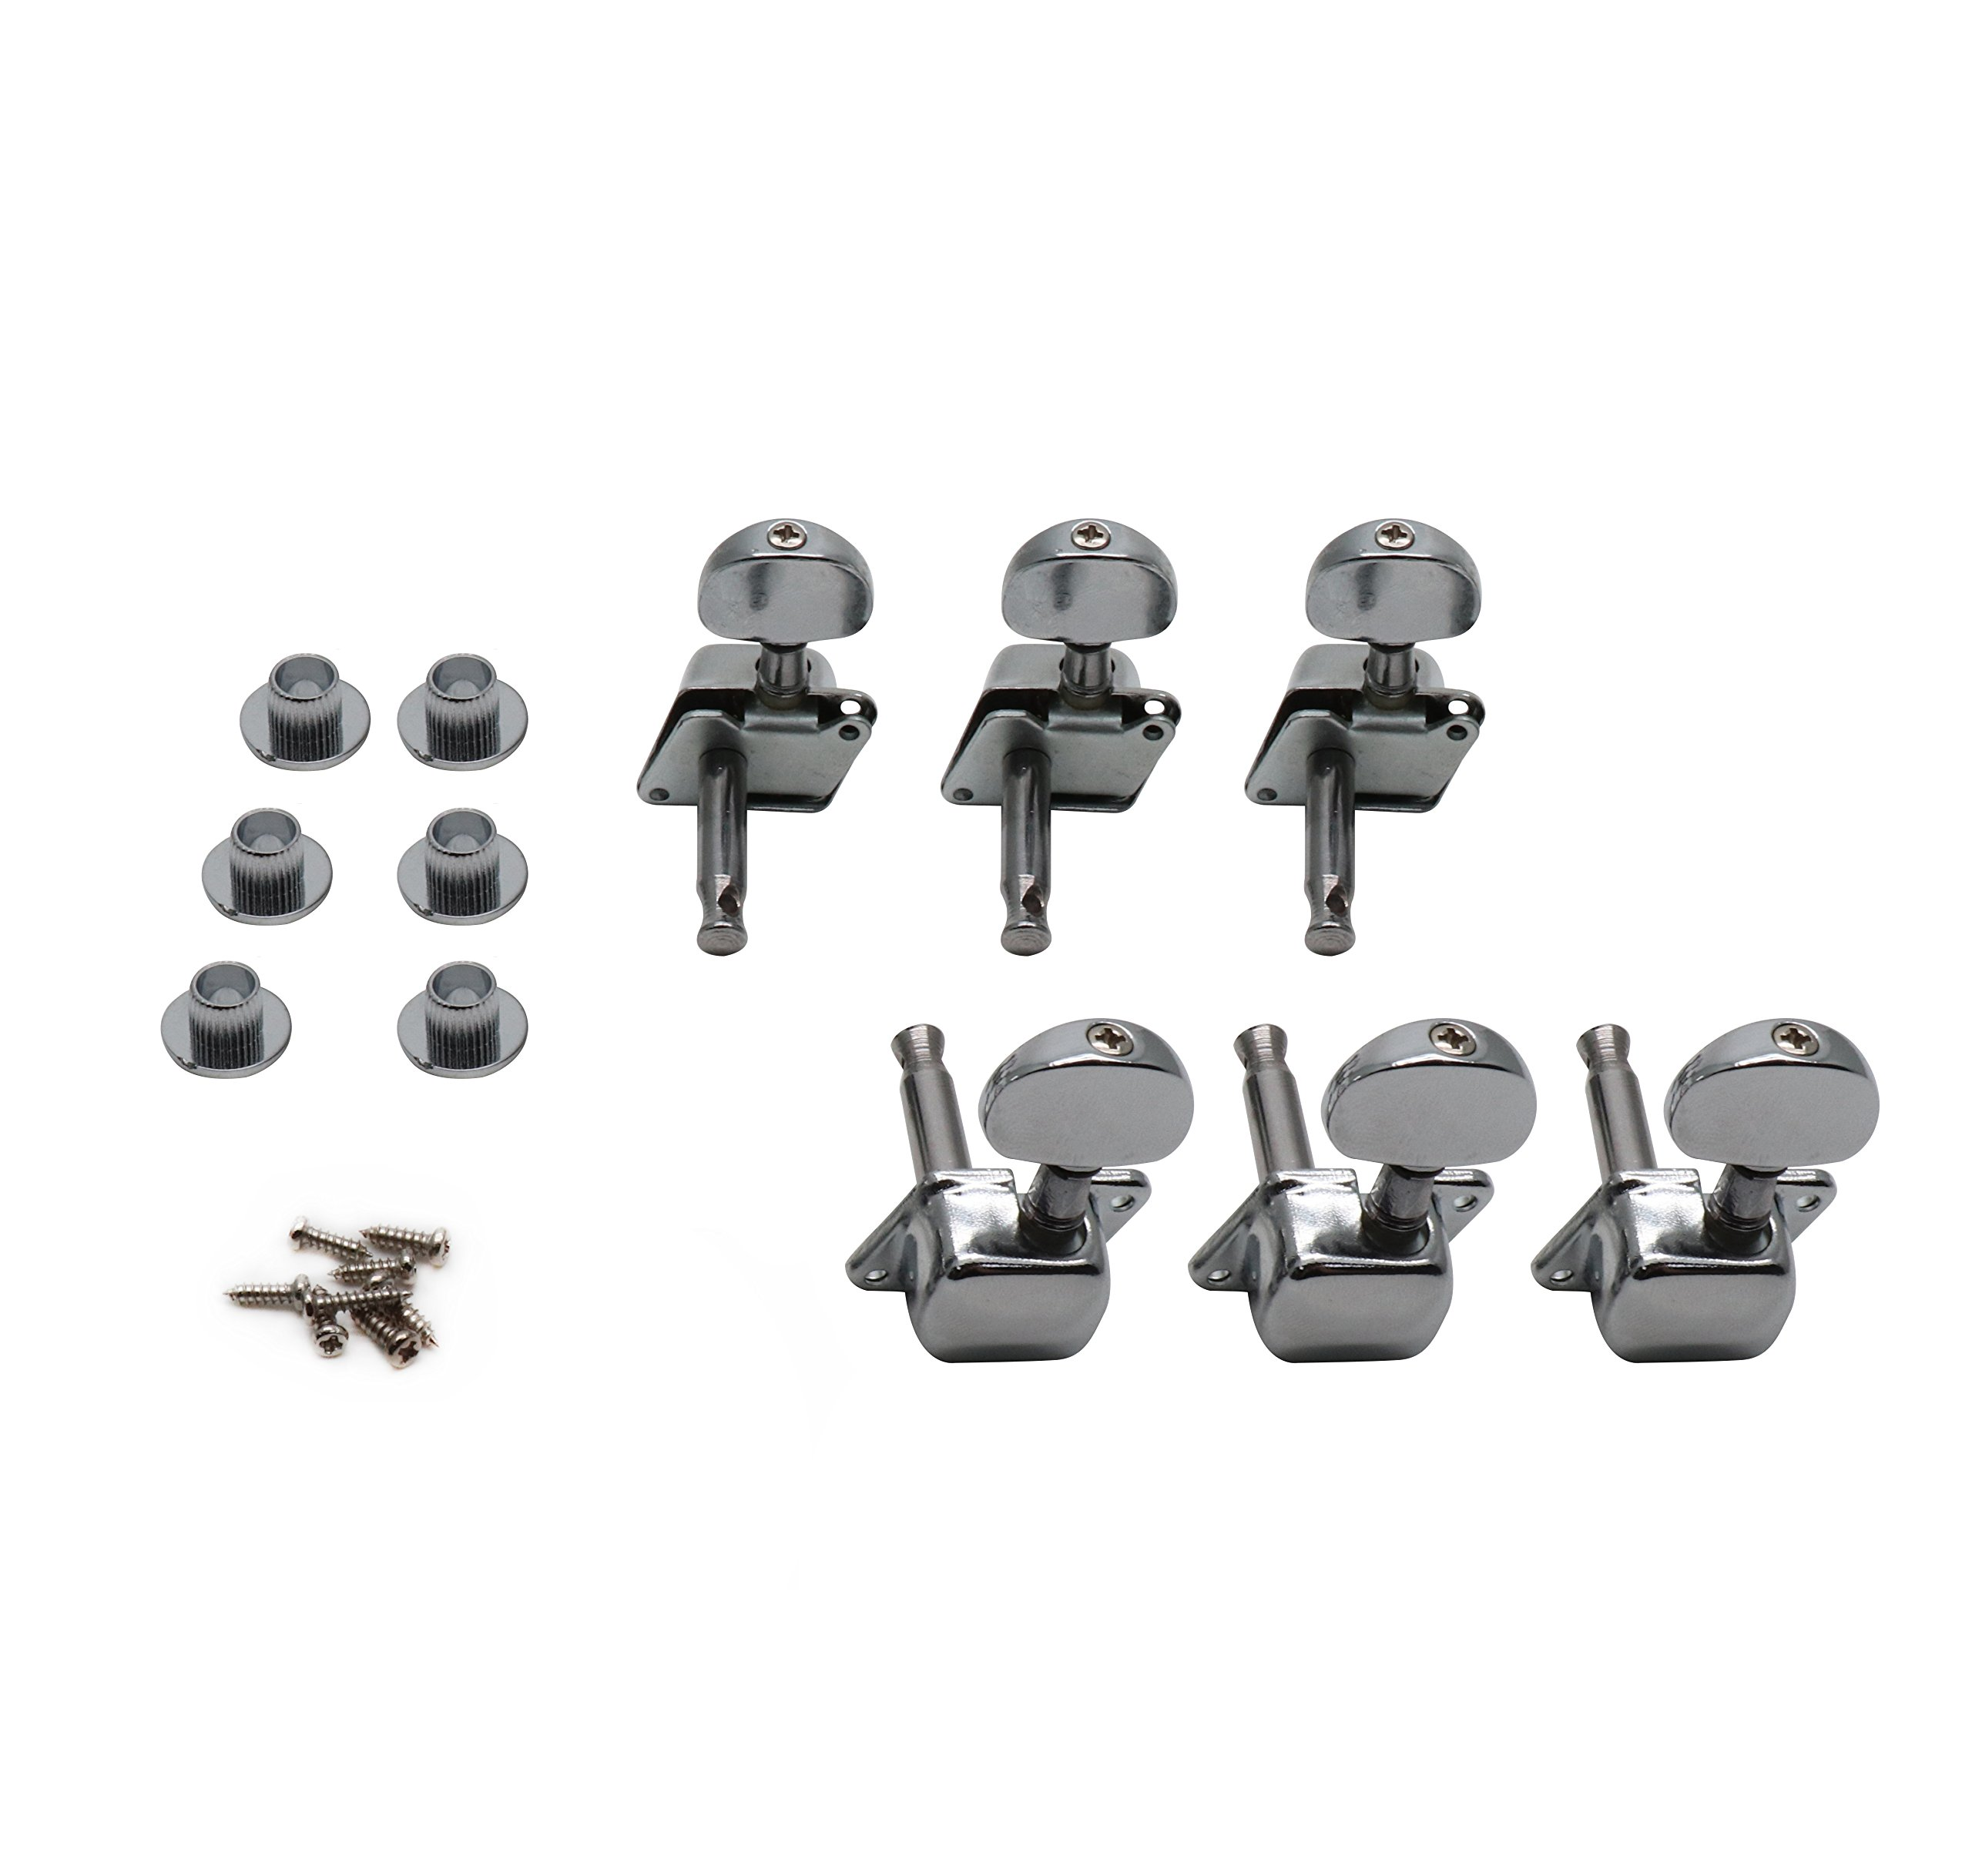 Guitar Parts 3 Left 3 Right Machine Heads Knobs Guitar String Tuning Pegs Machine Head Tuners Come With Screws